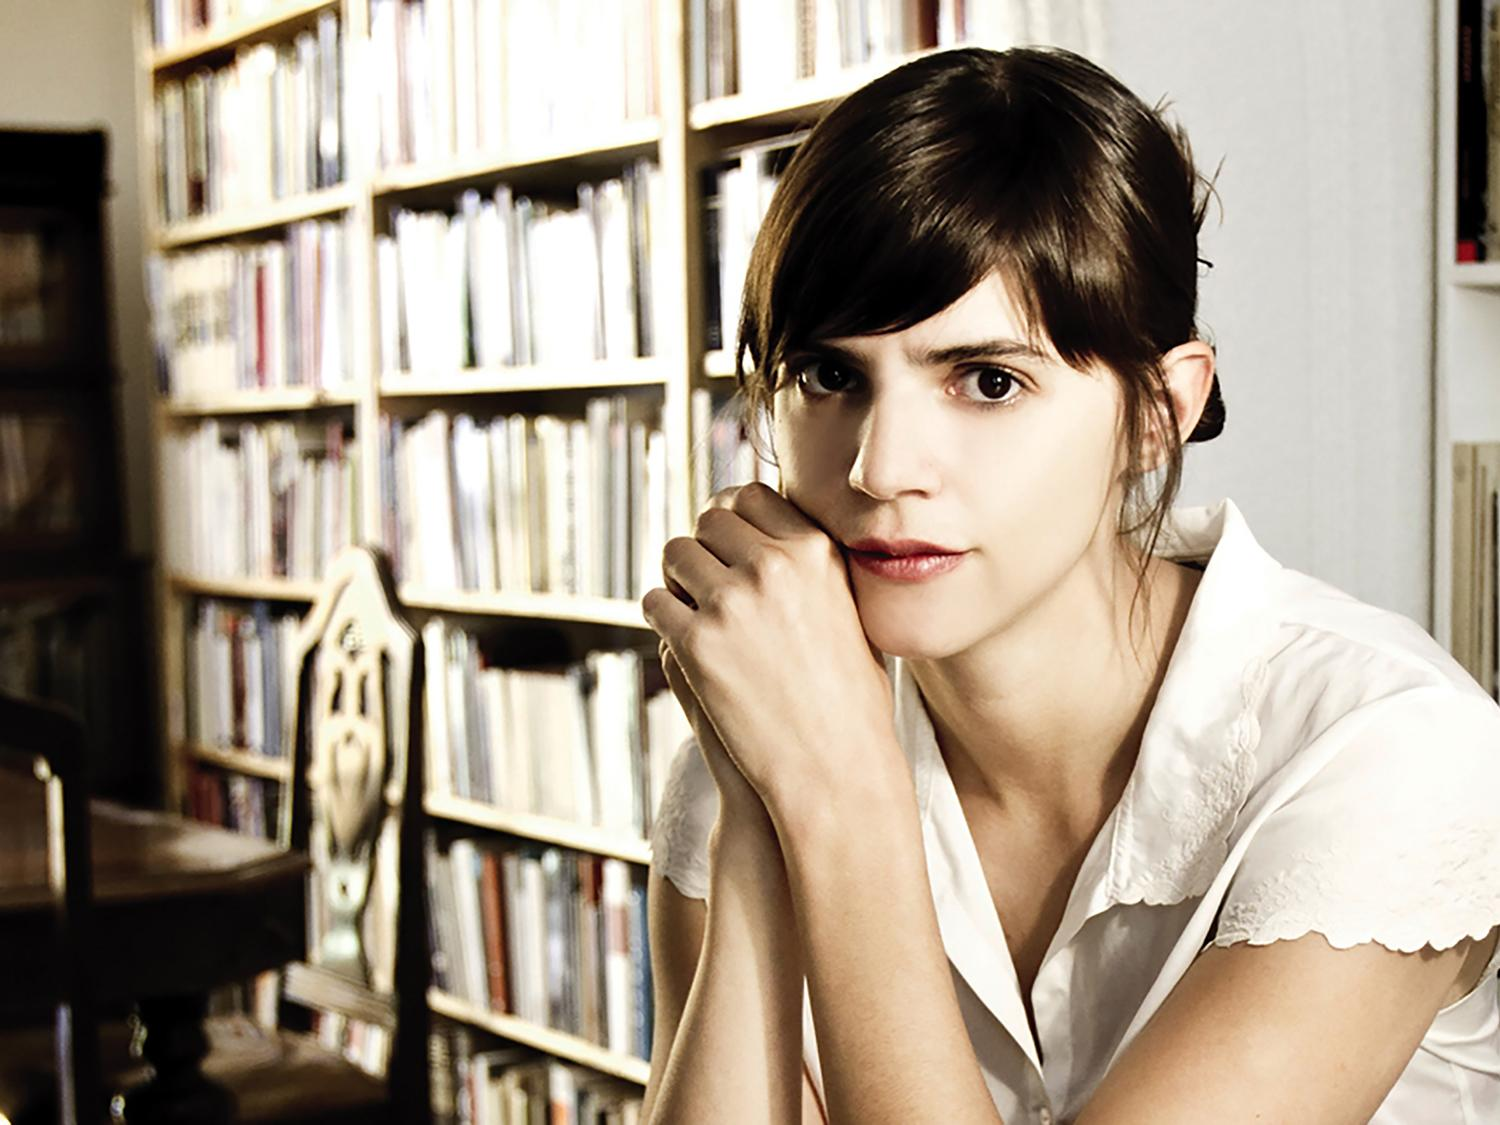 Author Valeria Luiselli